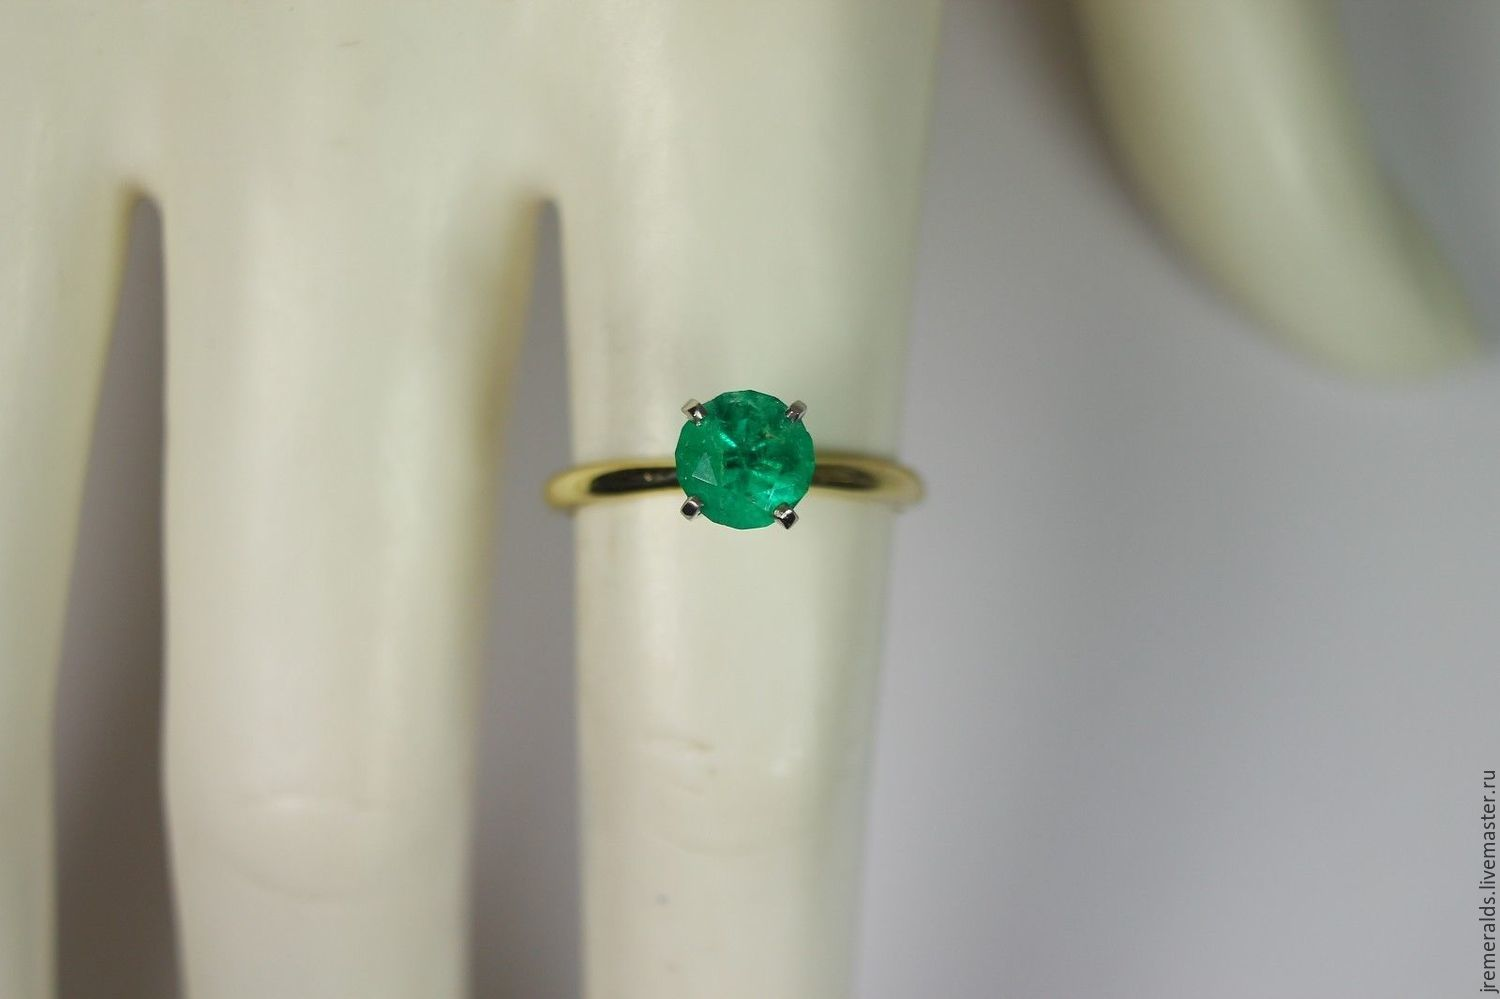 Rings Handmade 10 Cts Colombian Emerald & Two Tone Gold Solitaire Engagement  Ring 14